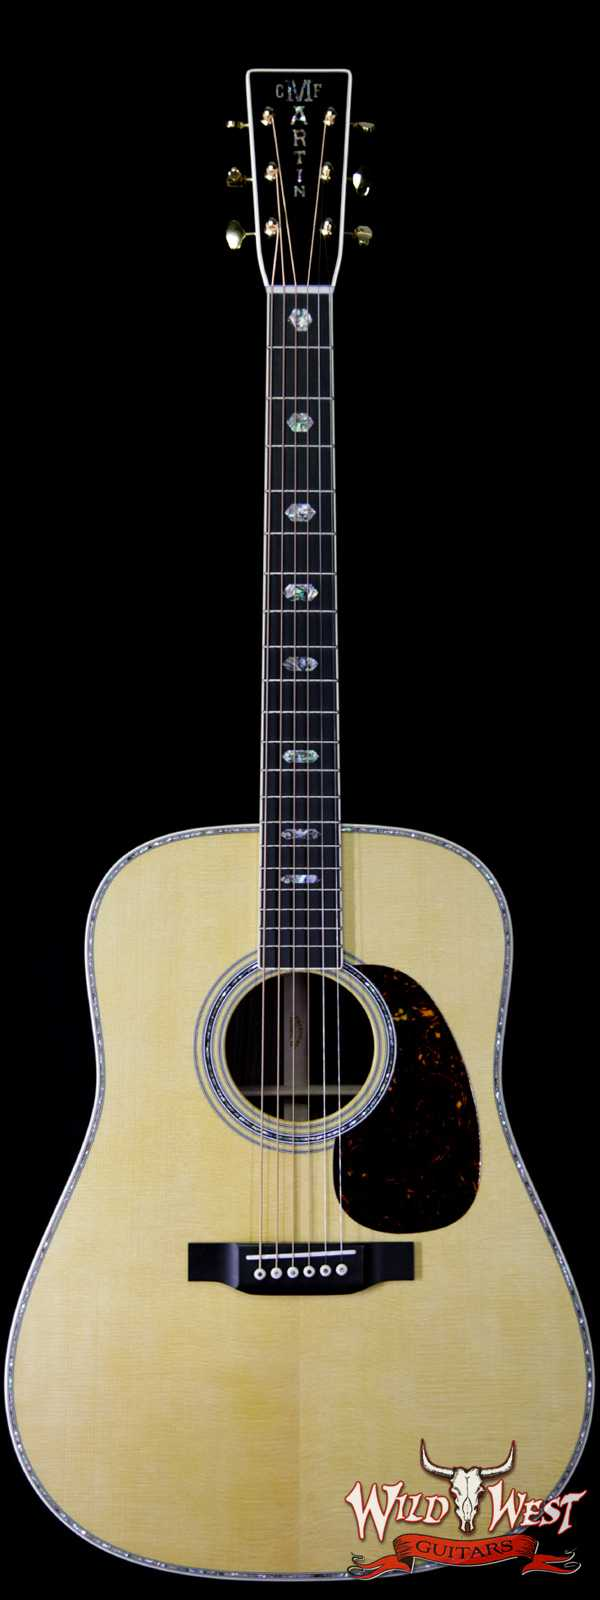 Martin USA Standard Series D-41 Dreadnought Guitar East Indian Rosewood Back & Side Aging Toner